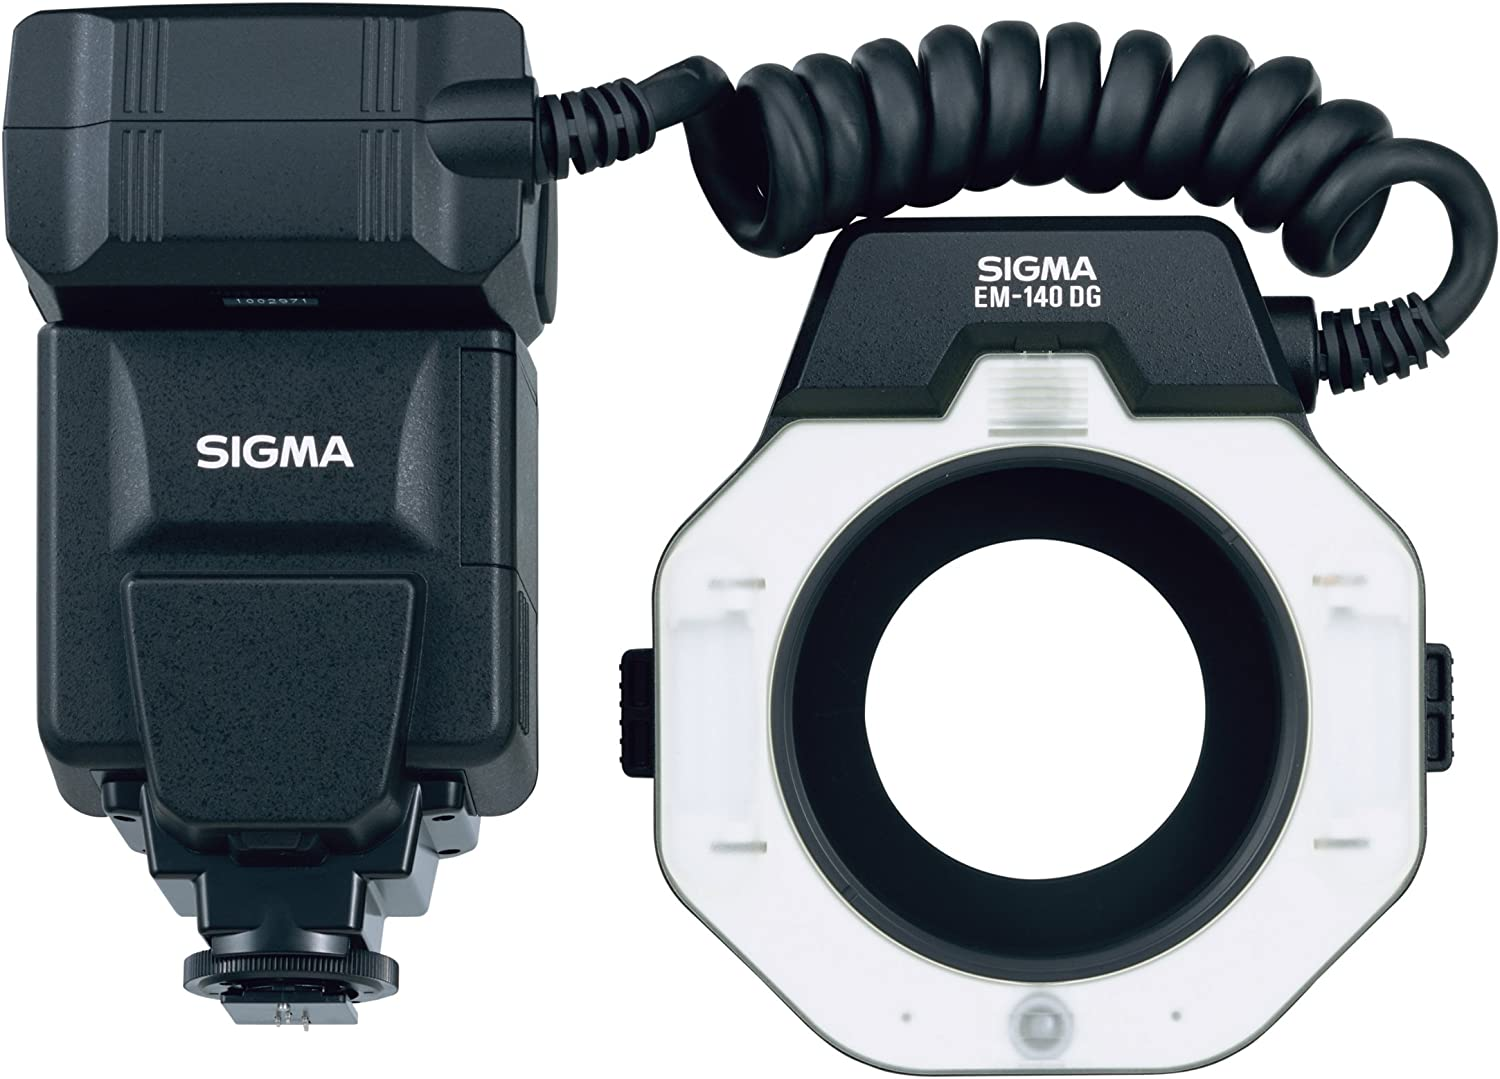 Sigma EM-140 DG Macro Ring Canon Ranking TOP5 OFFicial site SLR Flash for Cameras